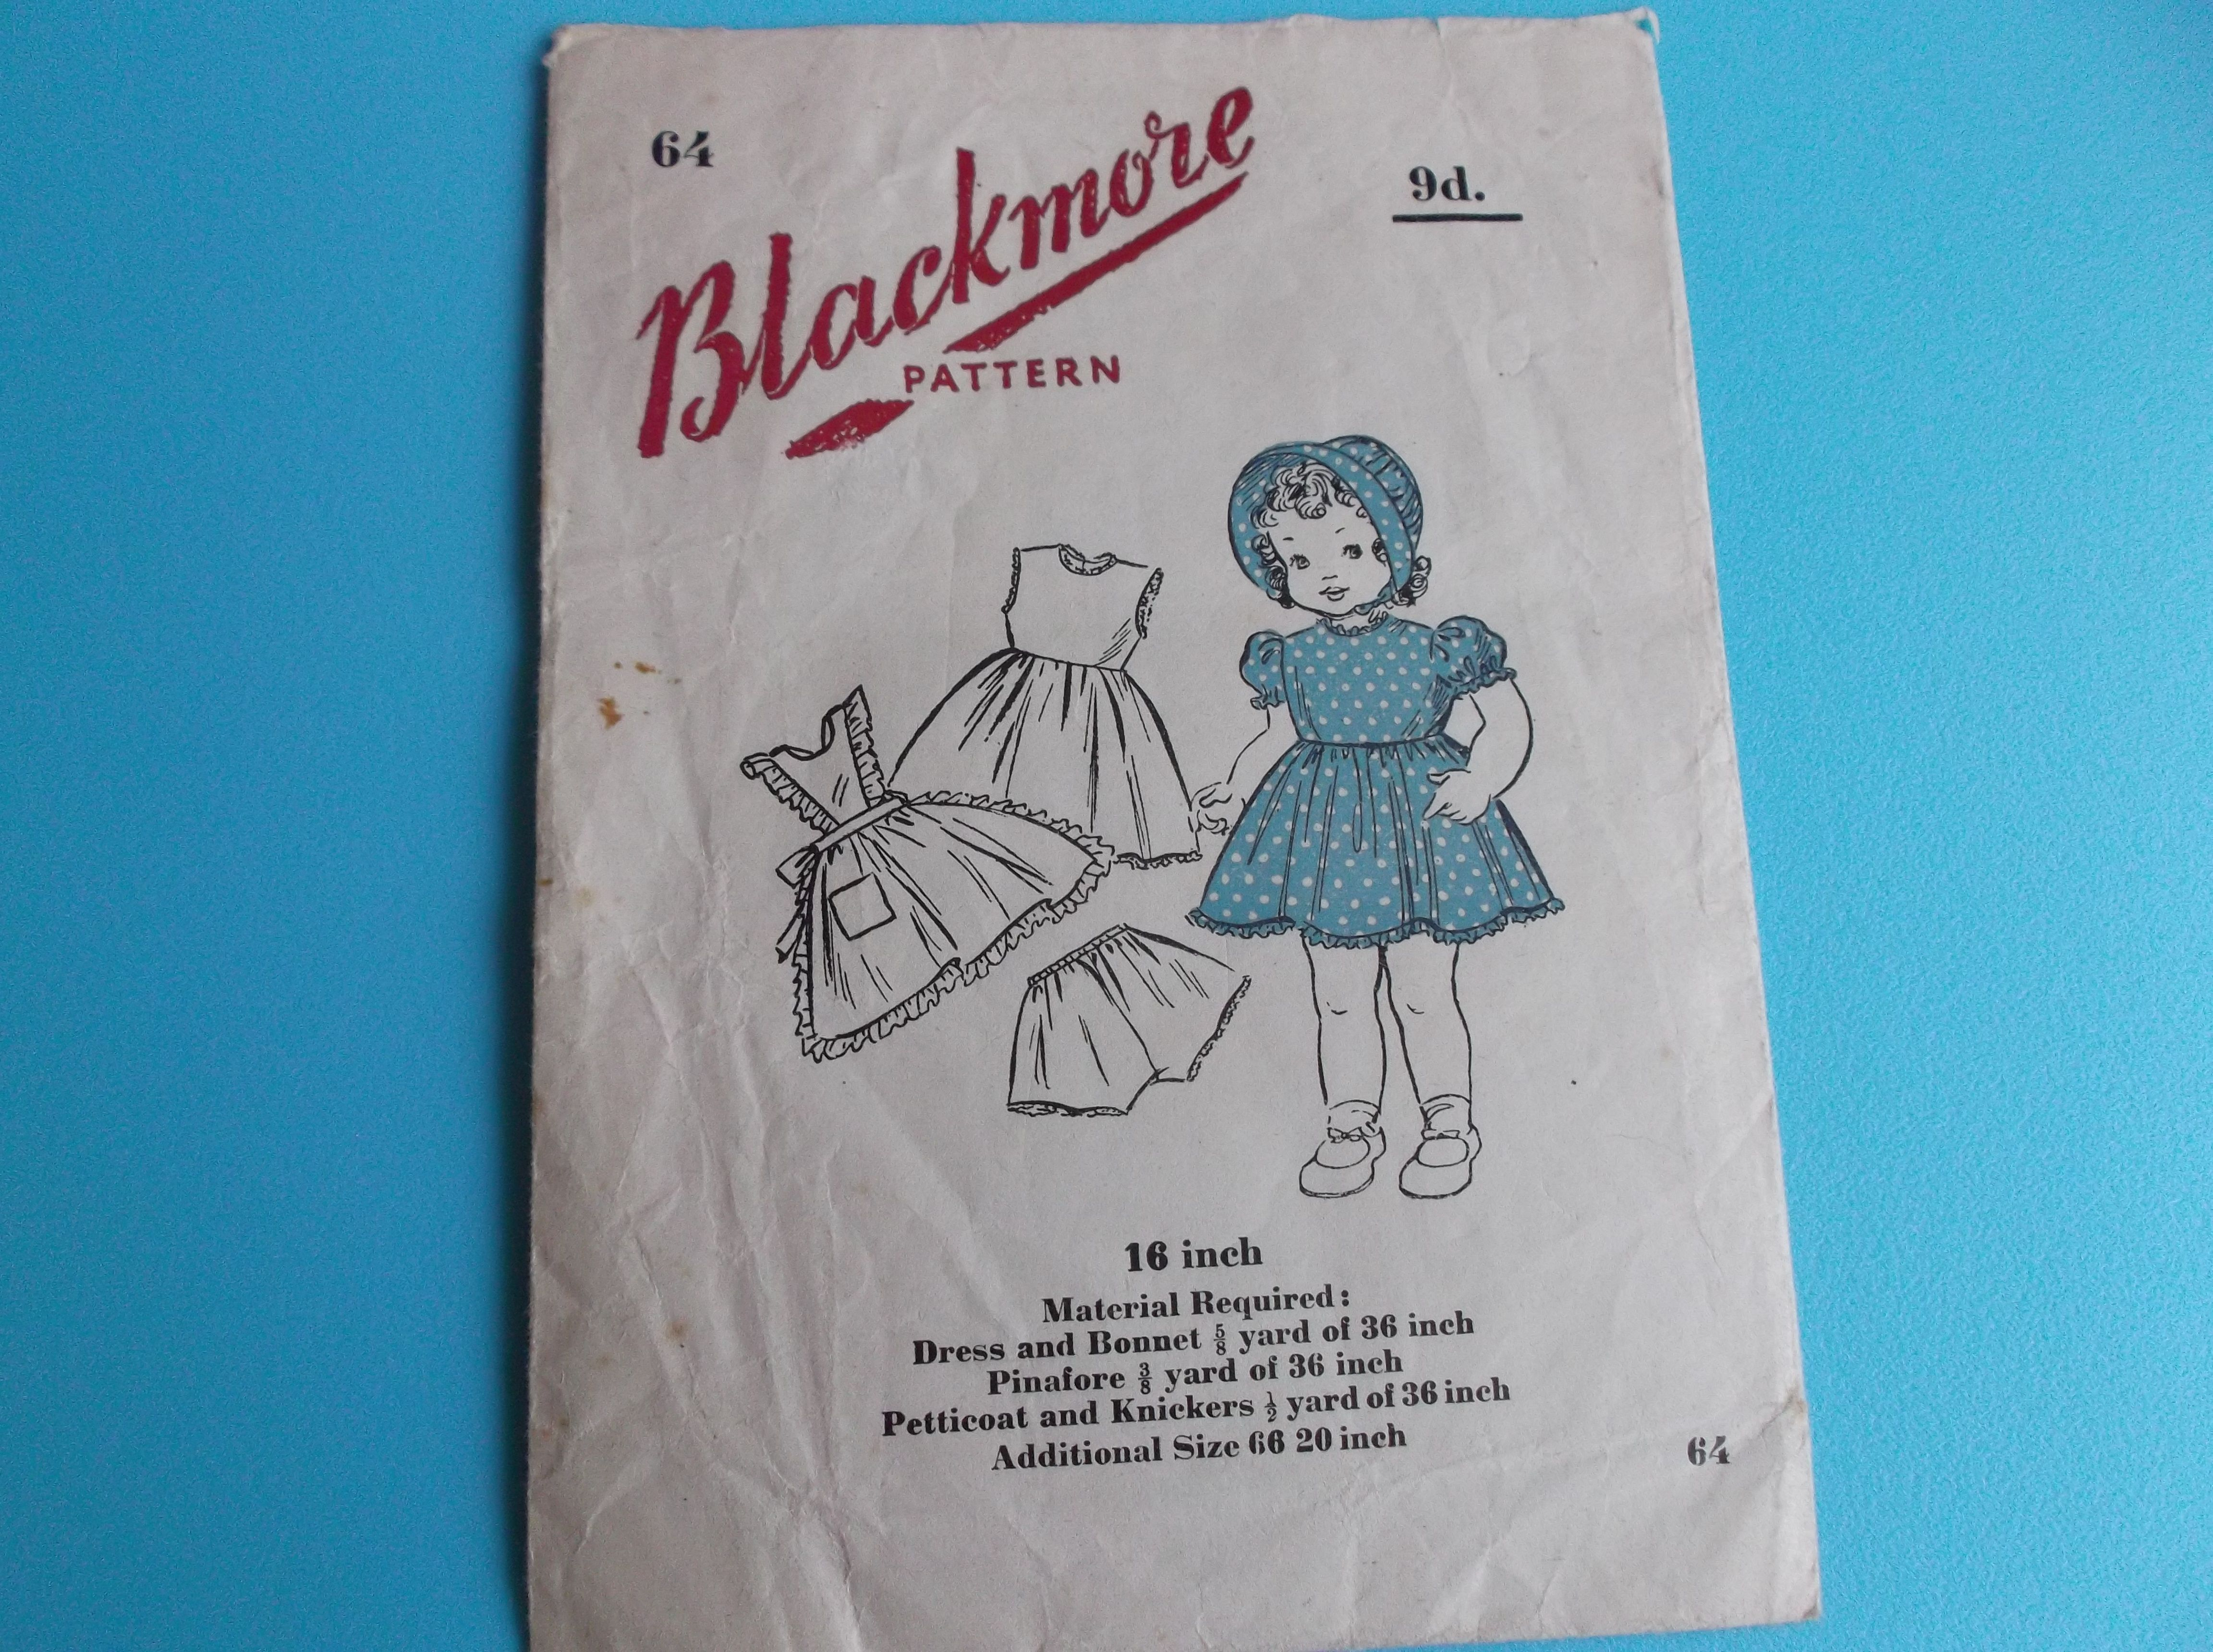 Great sewing pattern for a dolls outfit from blackmore patterns great sewing pattern for a dolls outfit from blackmore patterns from the 30s or 40s jeuxipadfo Images